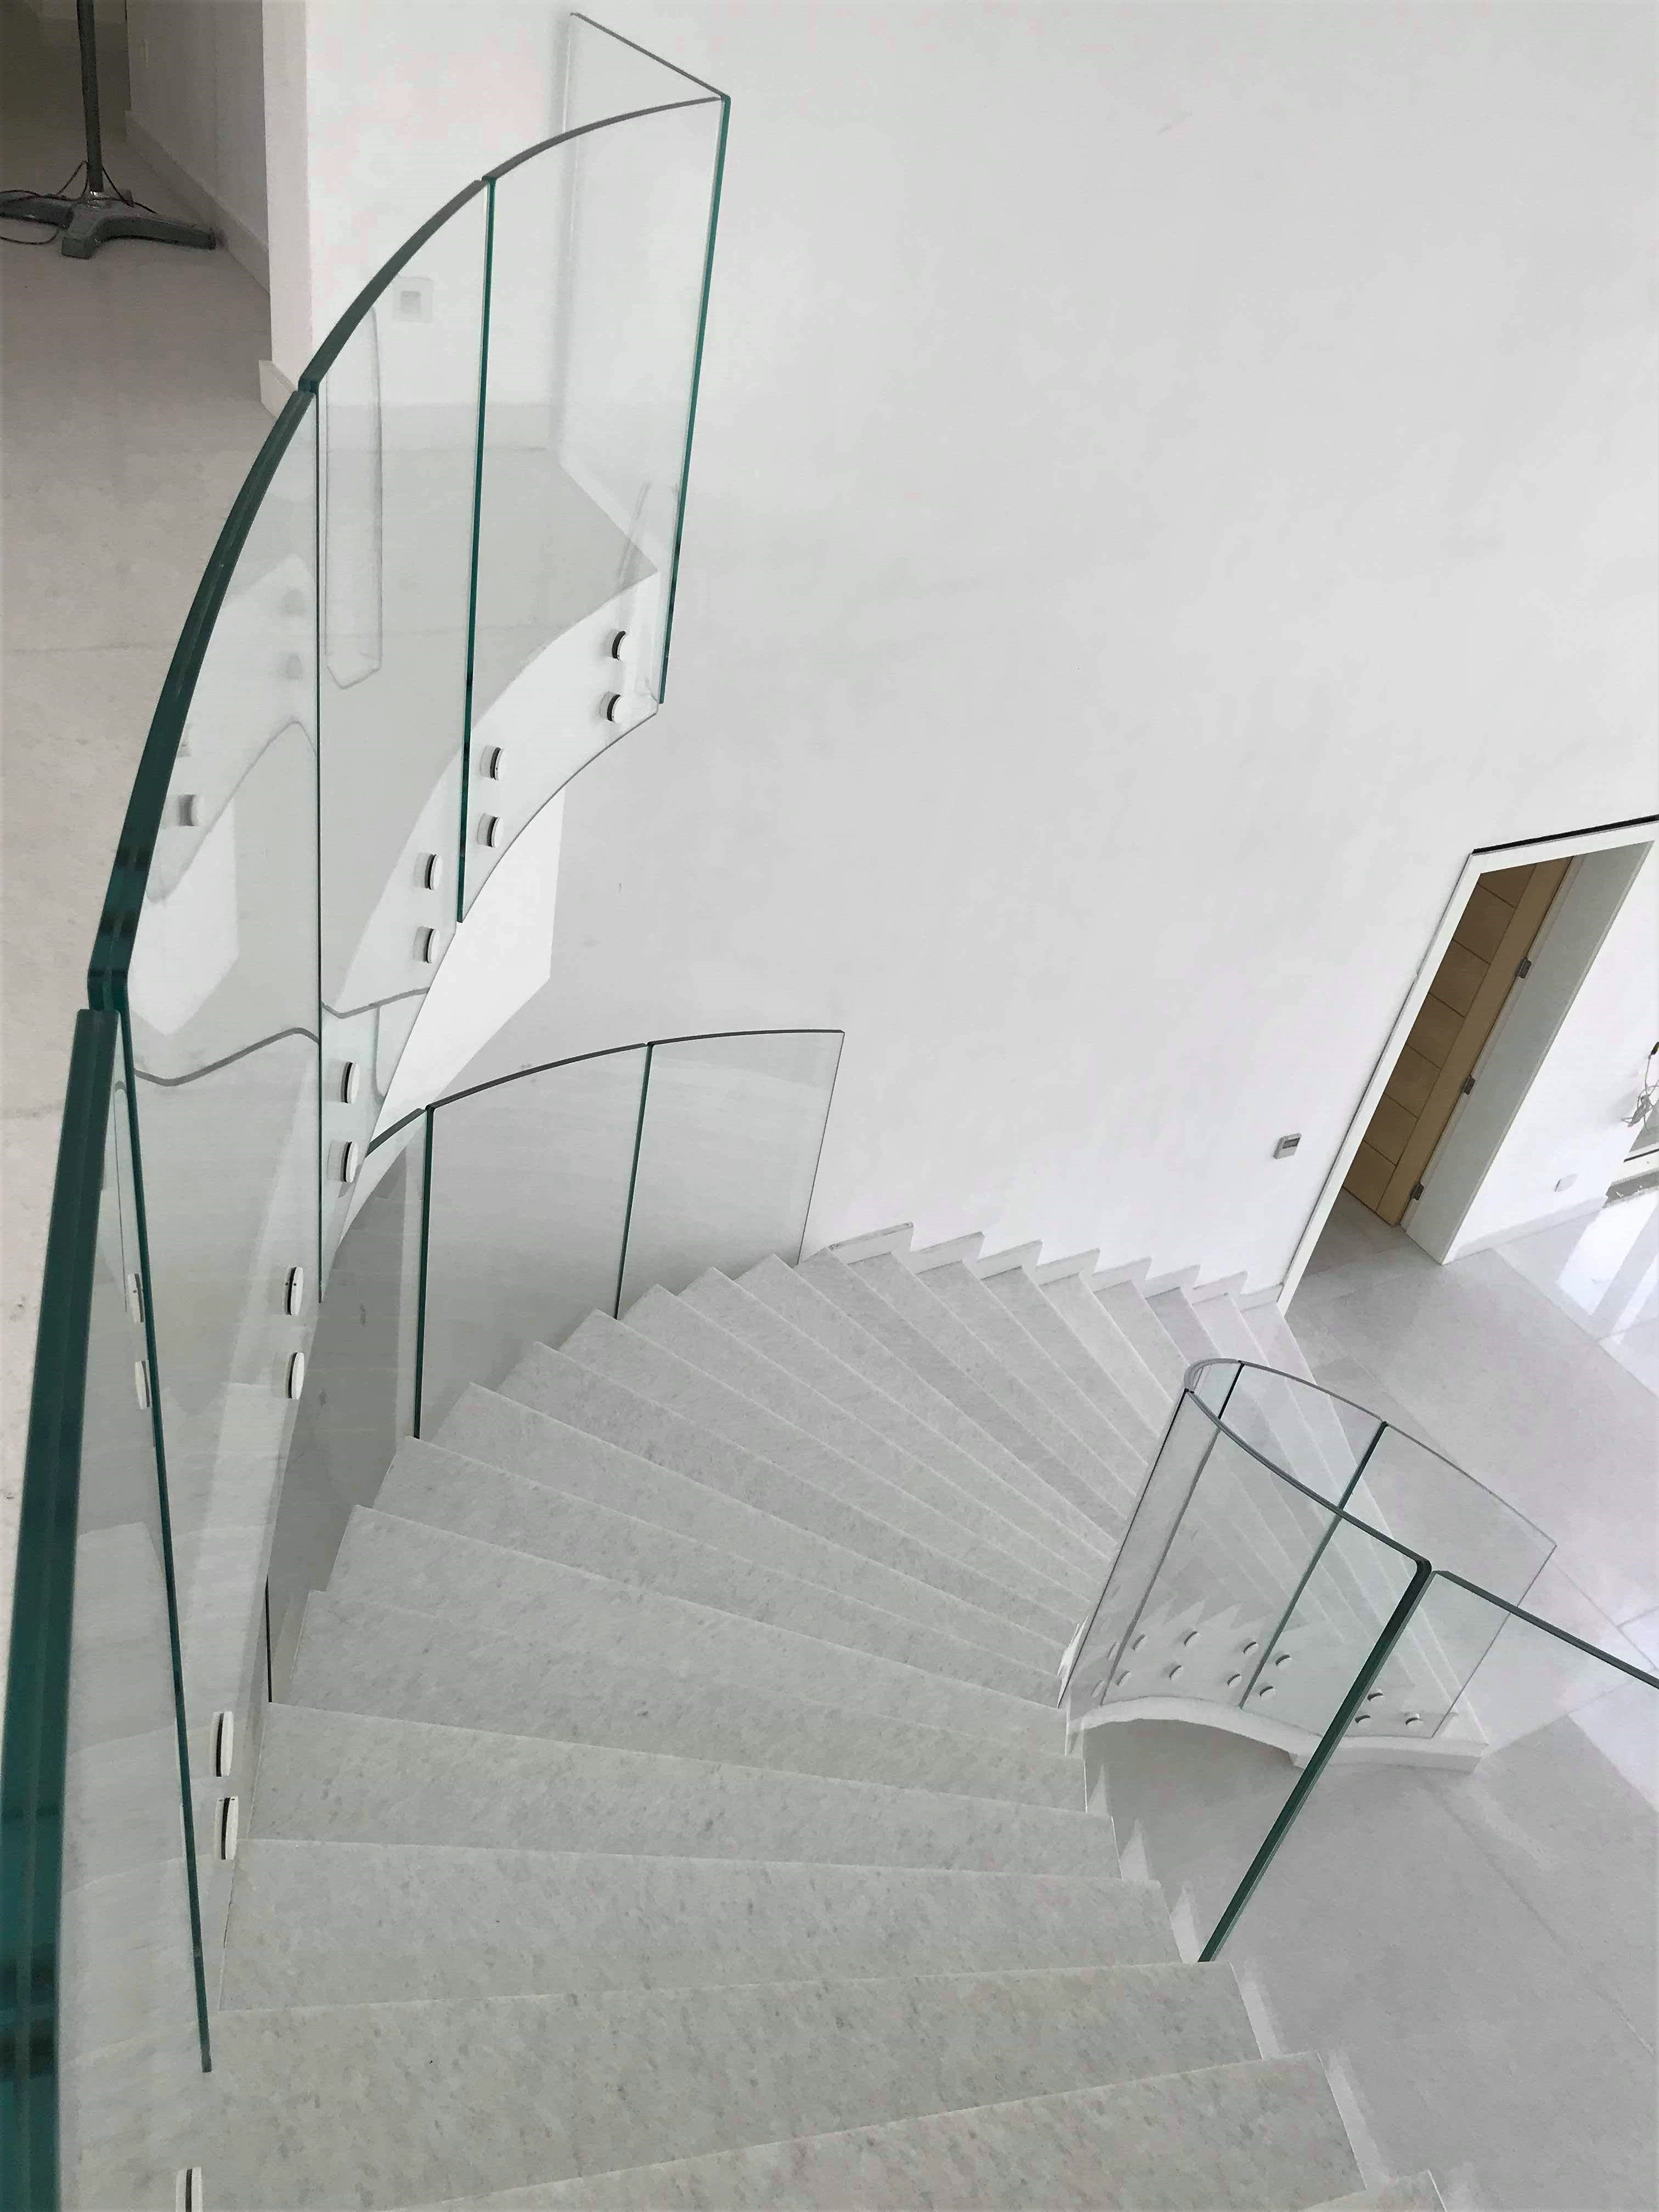 Bespoke frameless curved glass balustrade